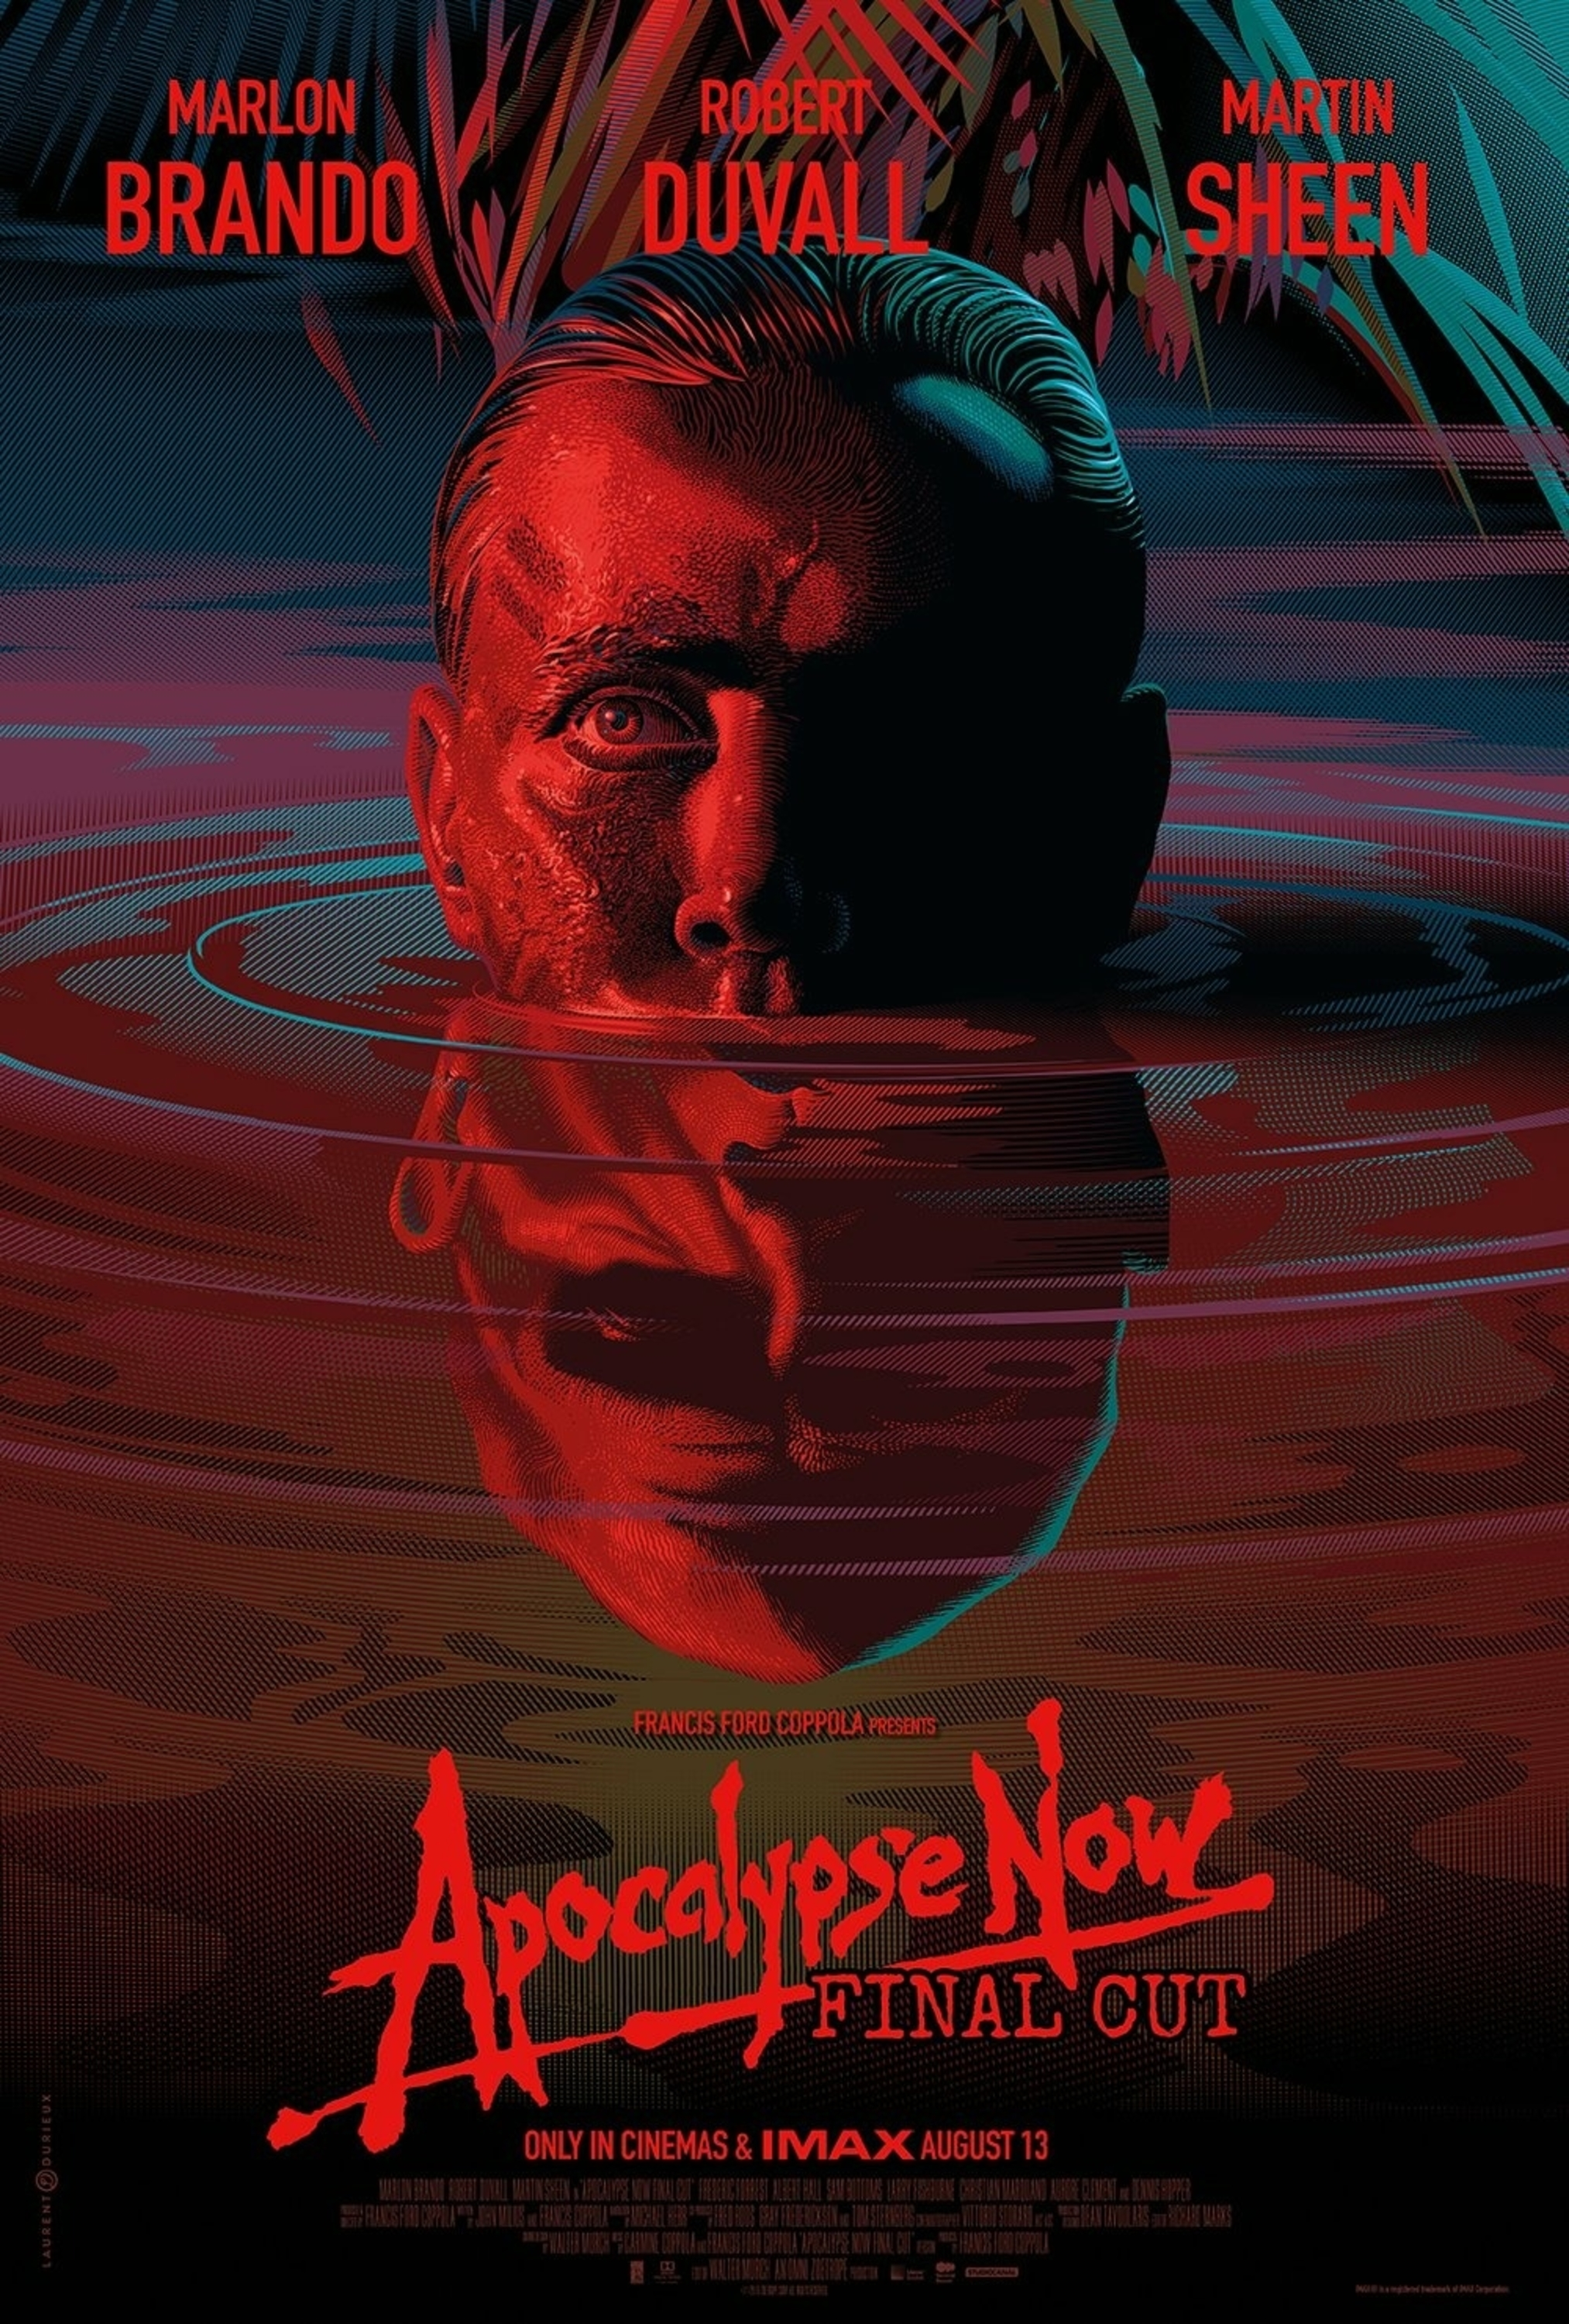 Thumbnail for Apocalypse now final cut poster